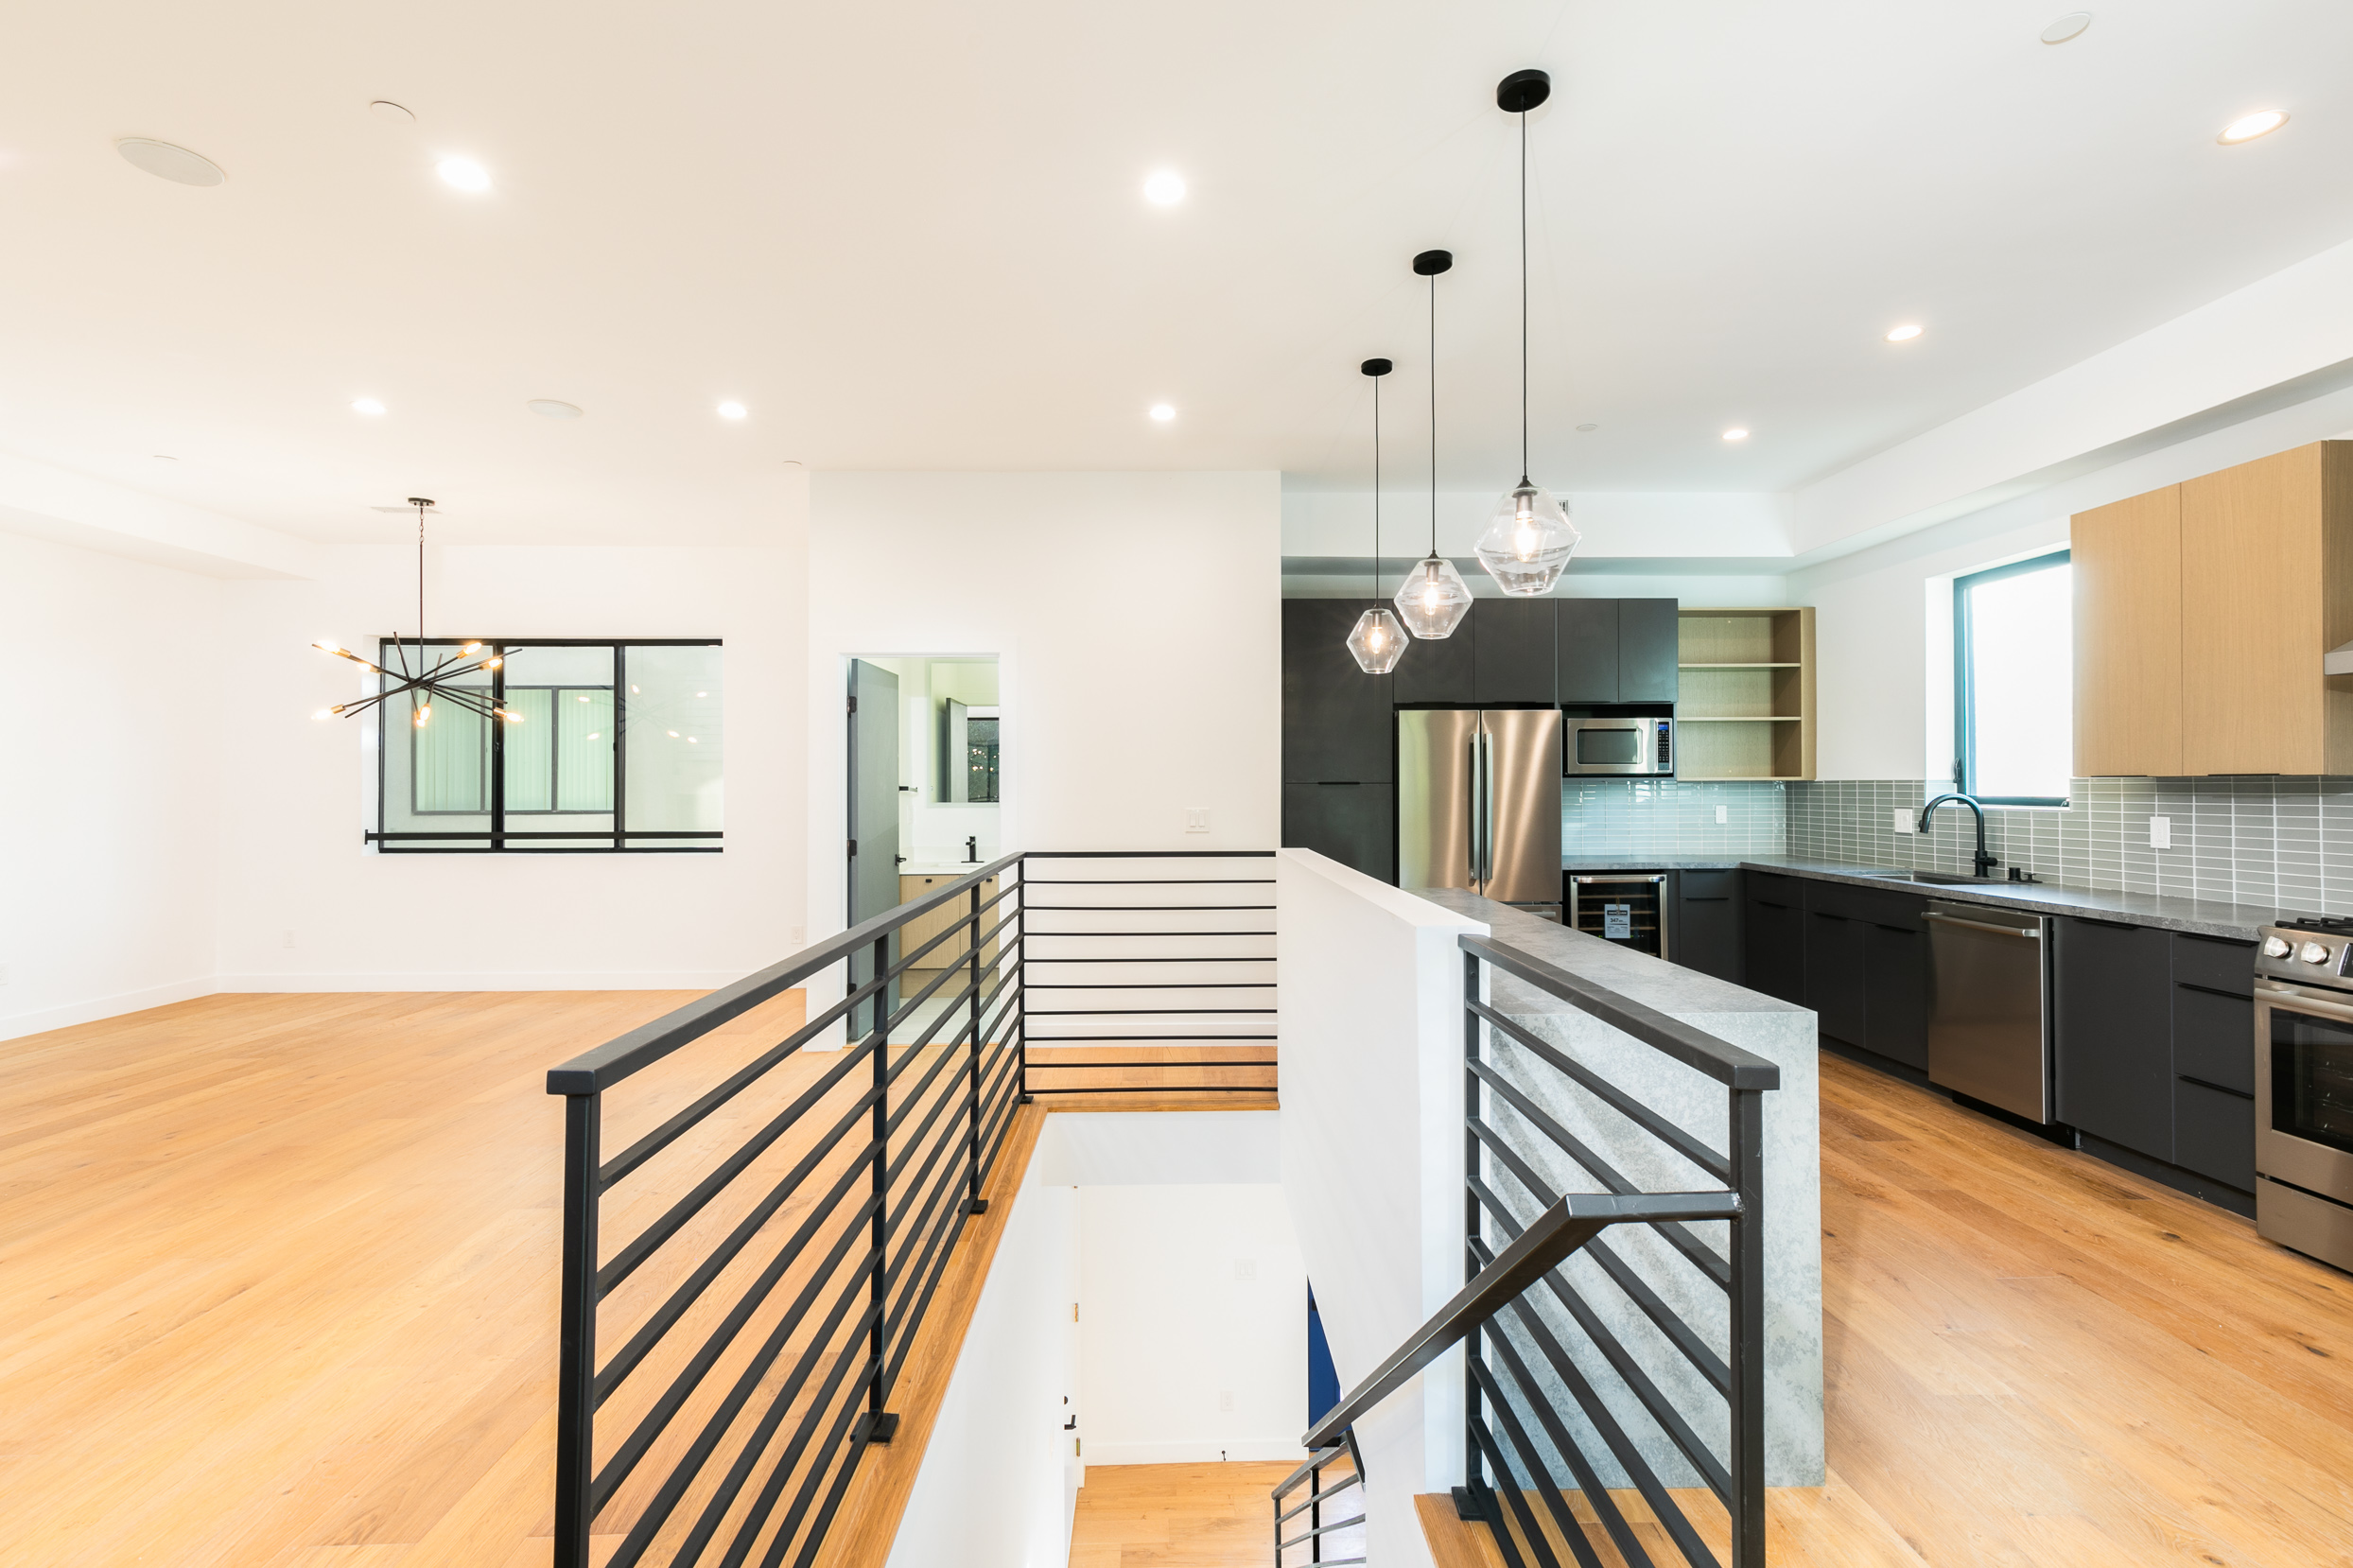 4-story Townhouse | 4 Bed, 4.5 Bath | Minutes from the Heart of Highland Park | Rooftop Terrace | New Build!